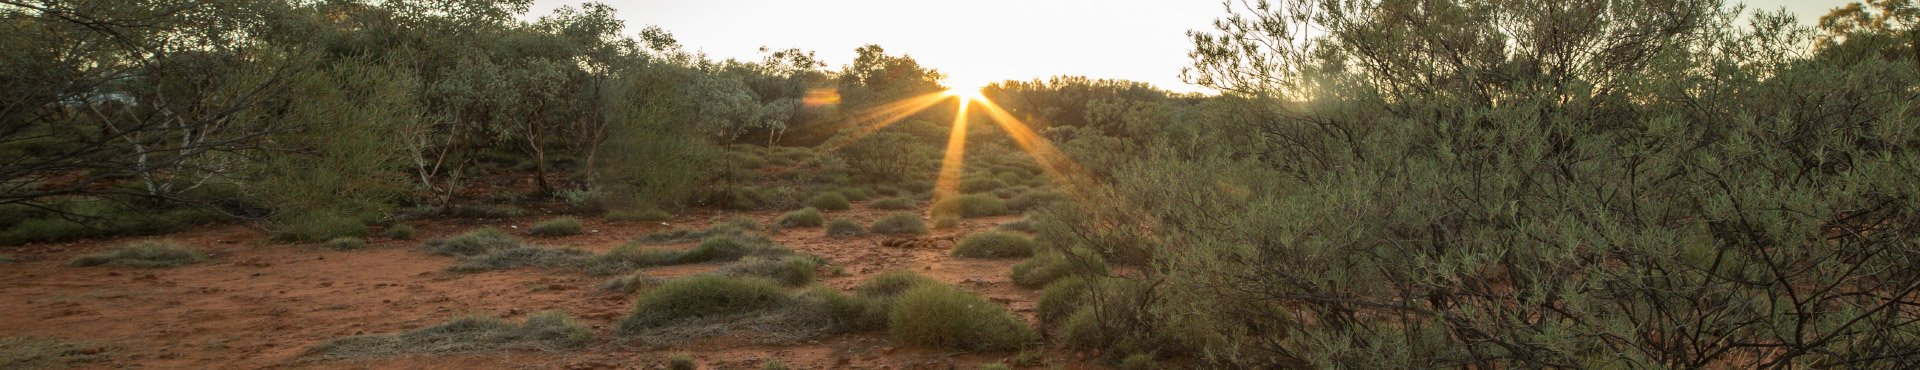 Australian Outback | Shine Lawyers